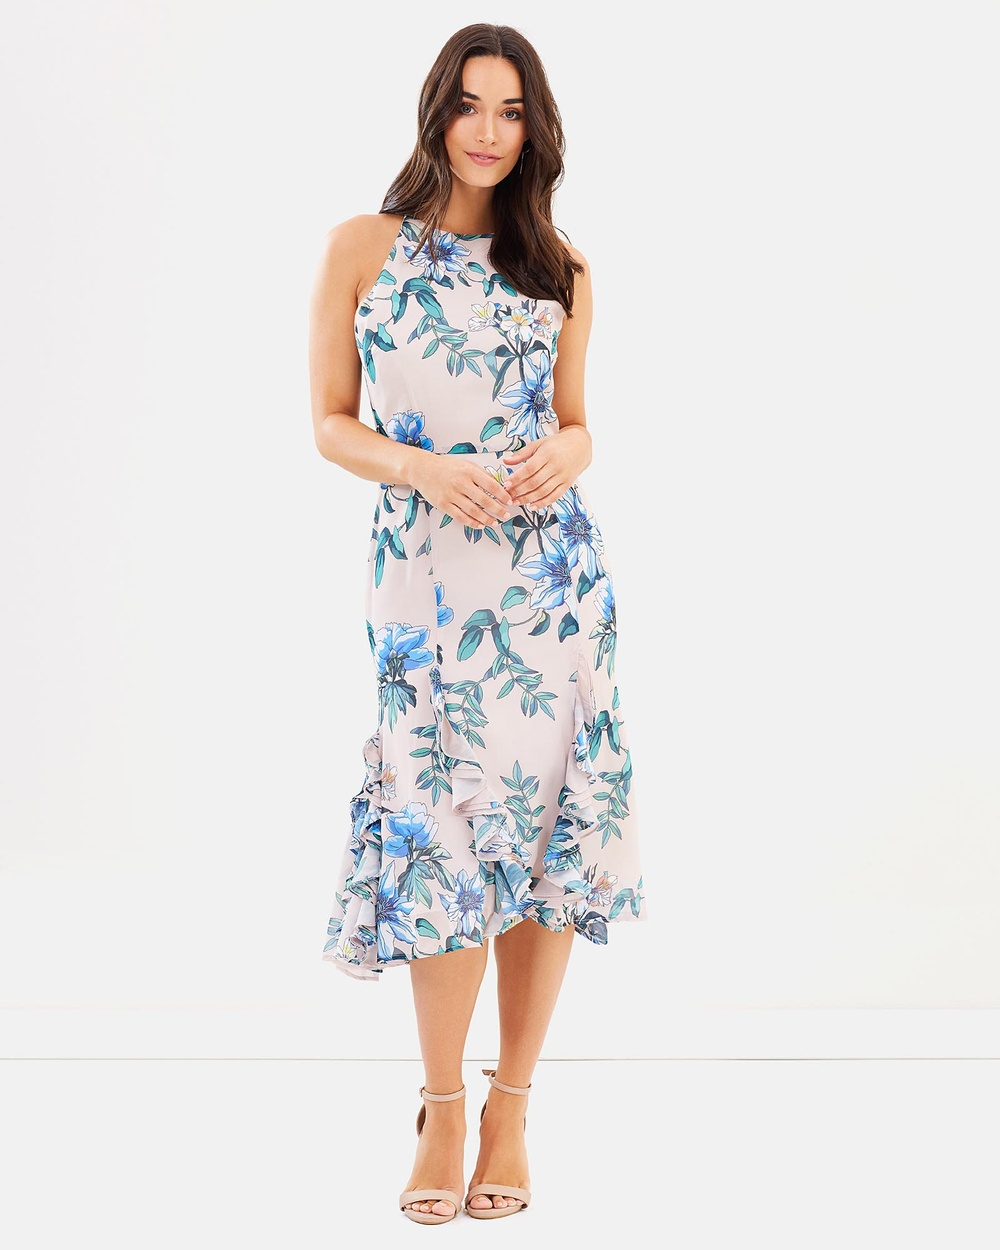 Cooper St Floral Courtyard Midi Dress Printed Dresses Light Print Floral Courtyard Midi Dress